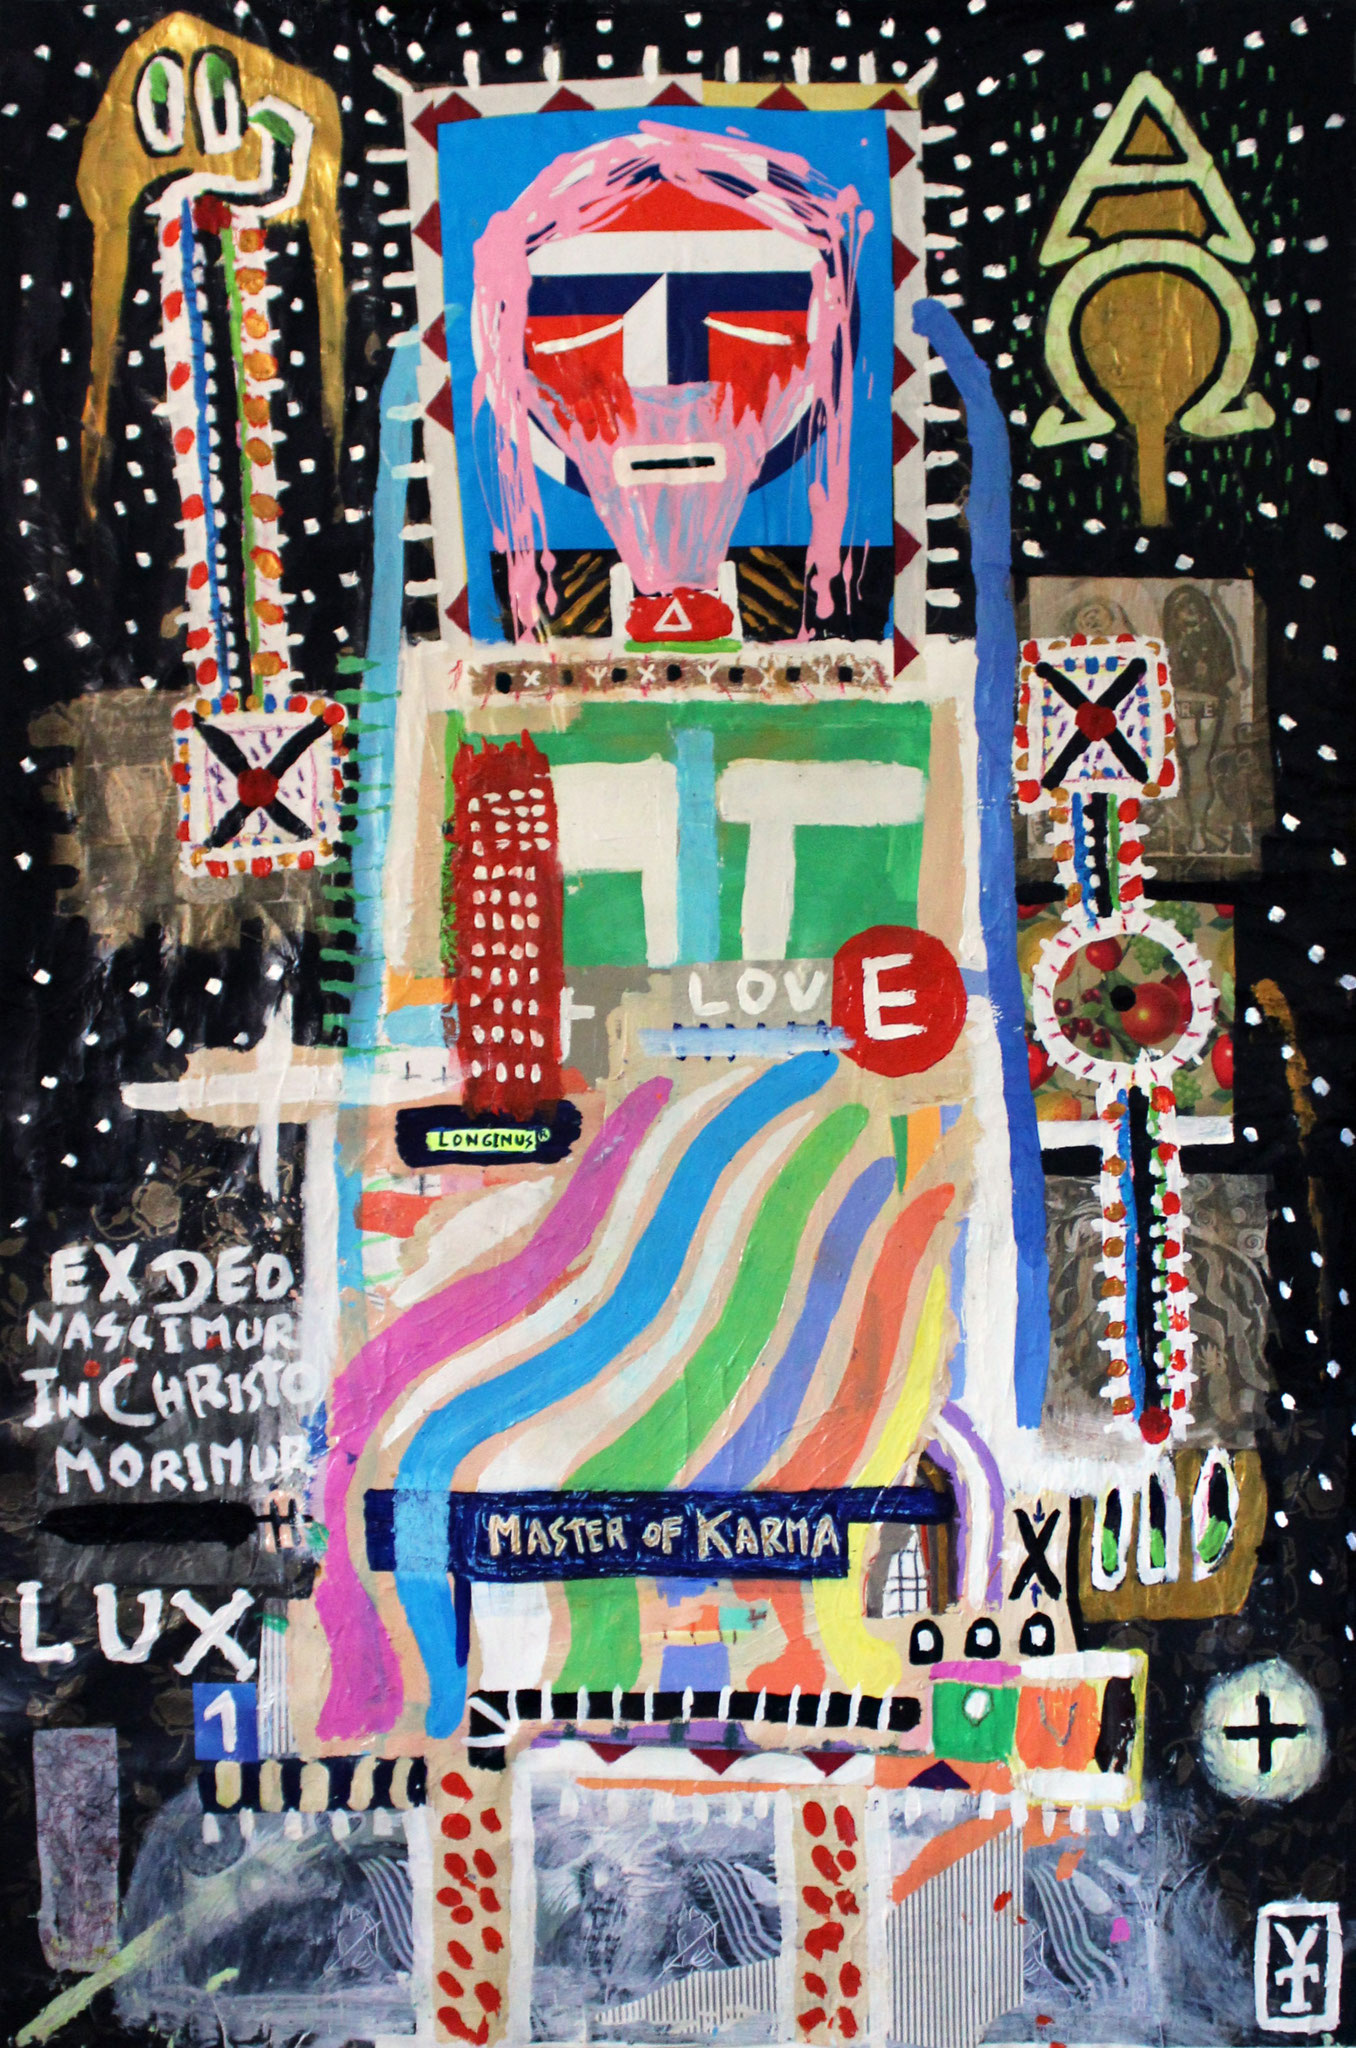 EL SEÑOR - Acrylic, collage and oil pastel on canvas - 44.5x69inch- 2015